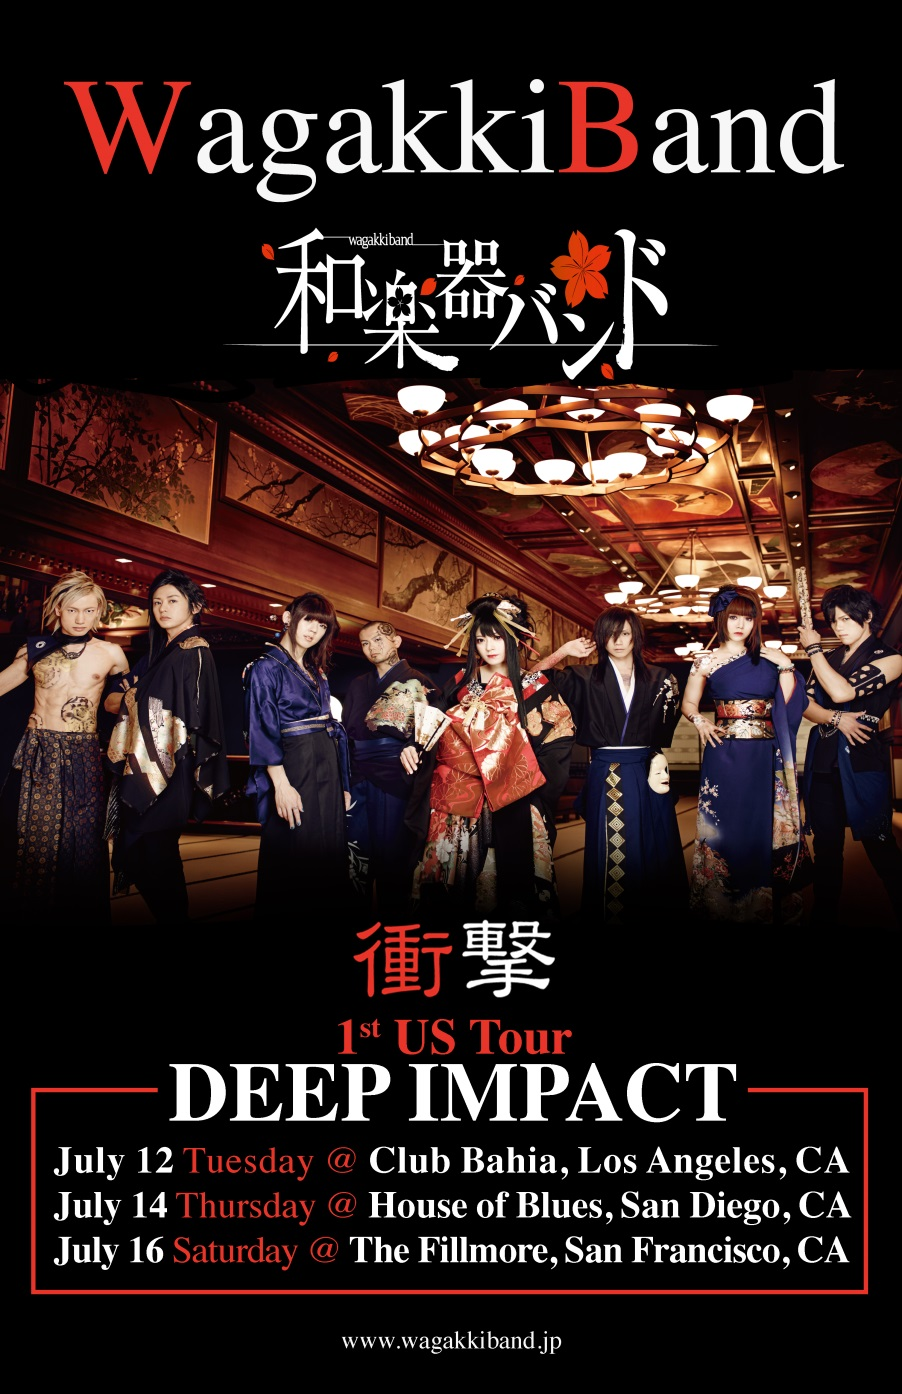 JRock247-Wagakki-Band-USA-July-2016-Tour-poster